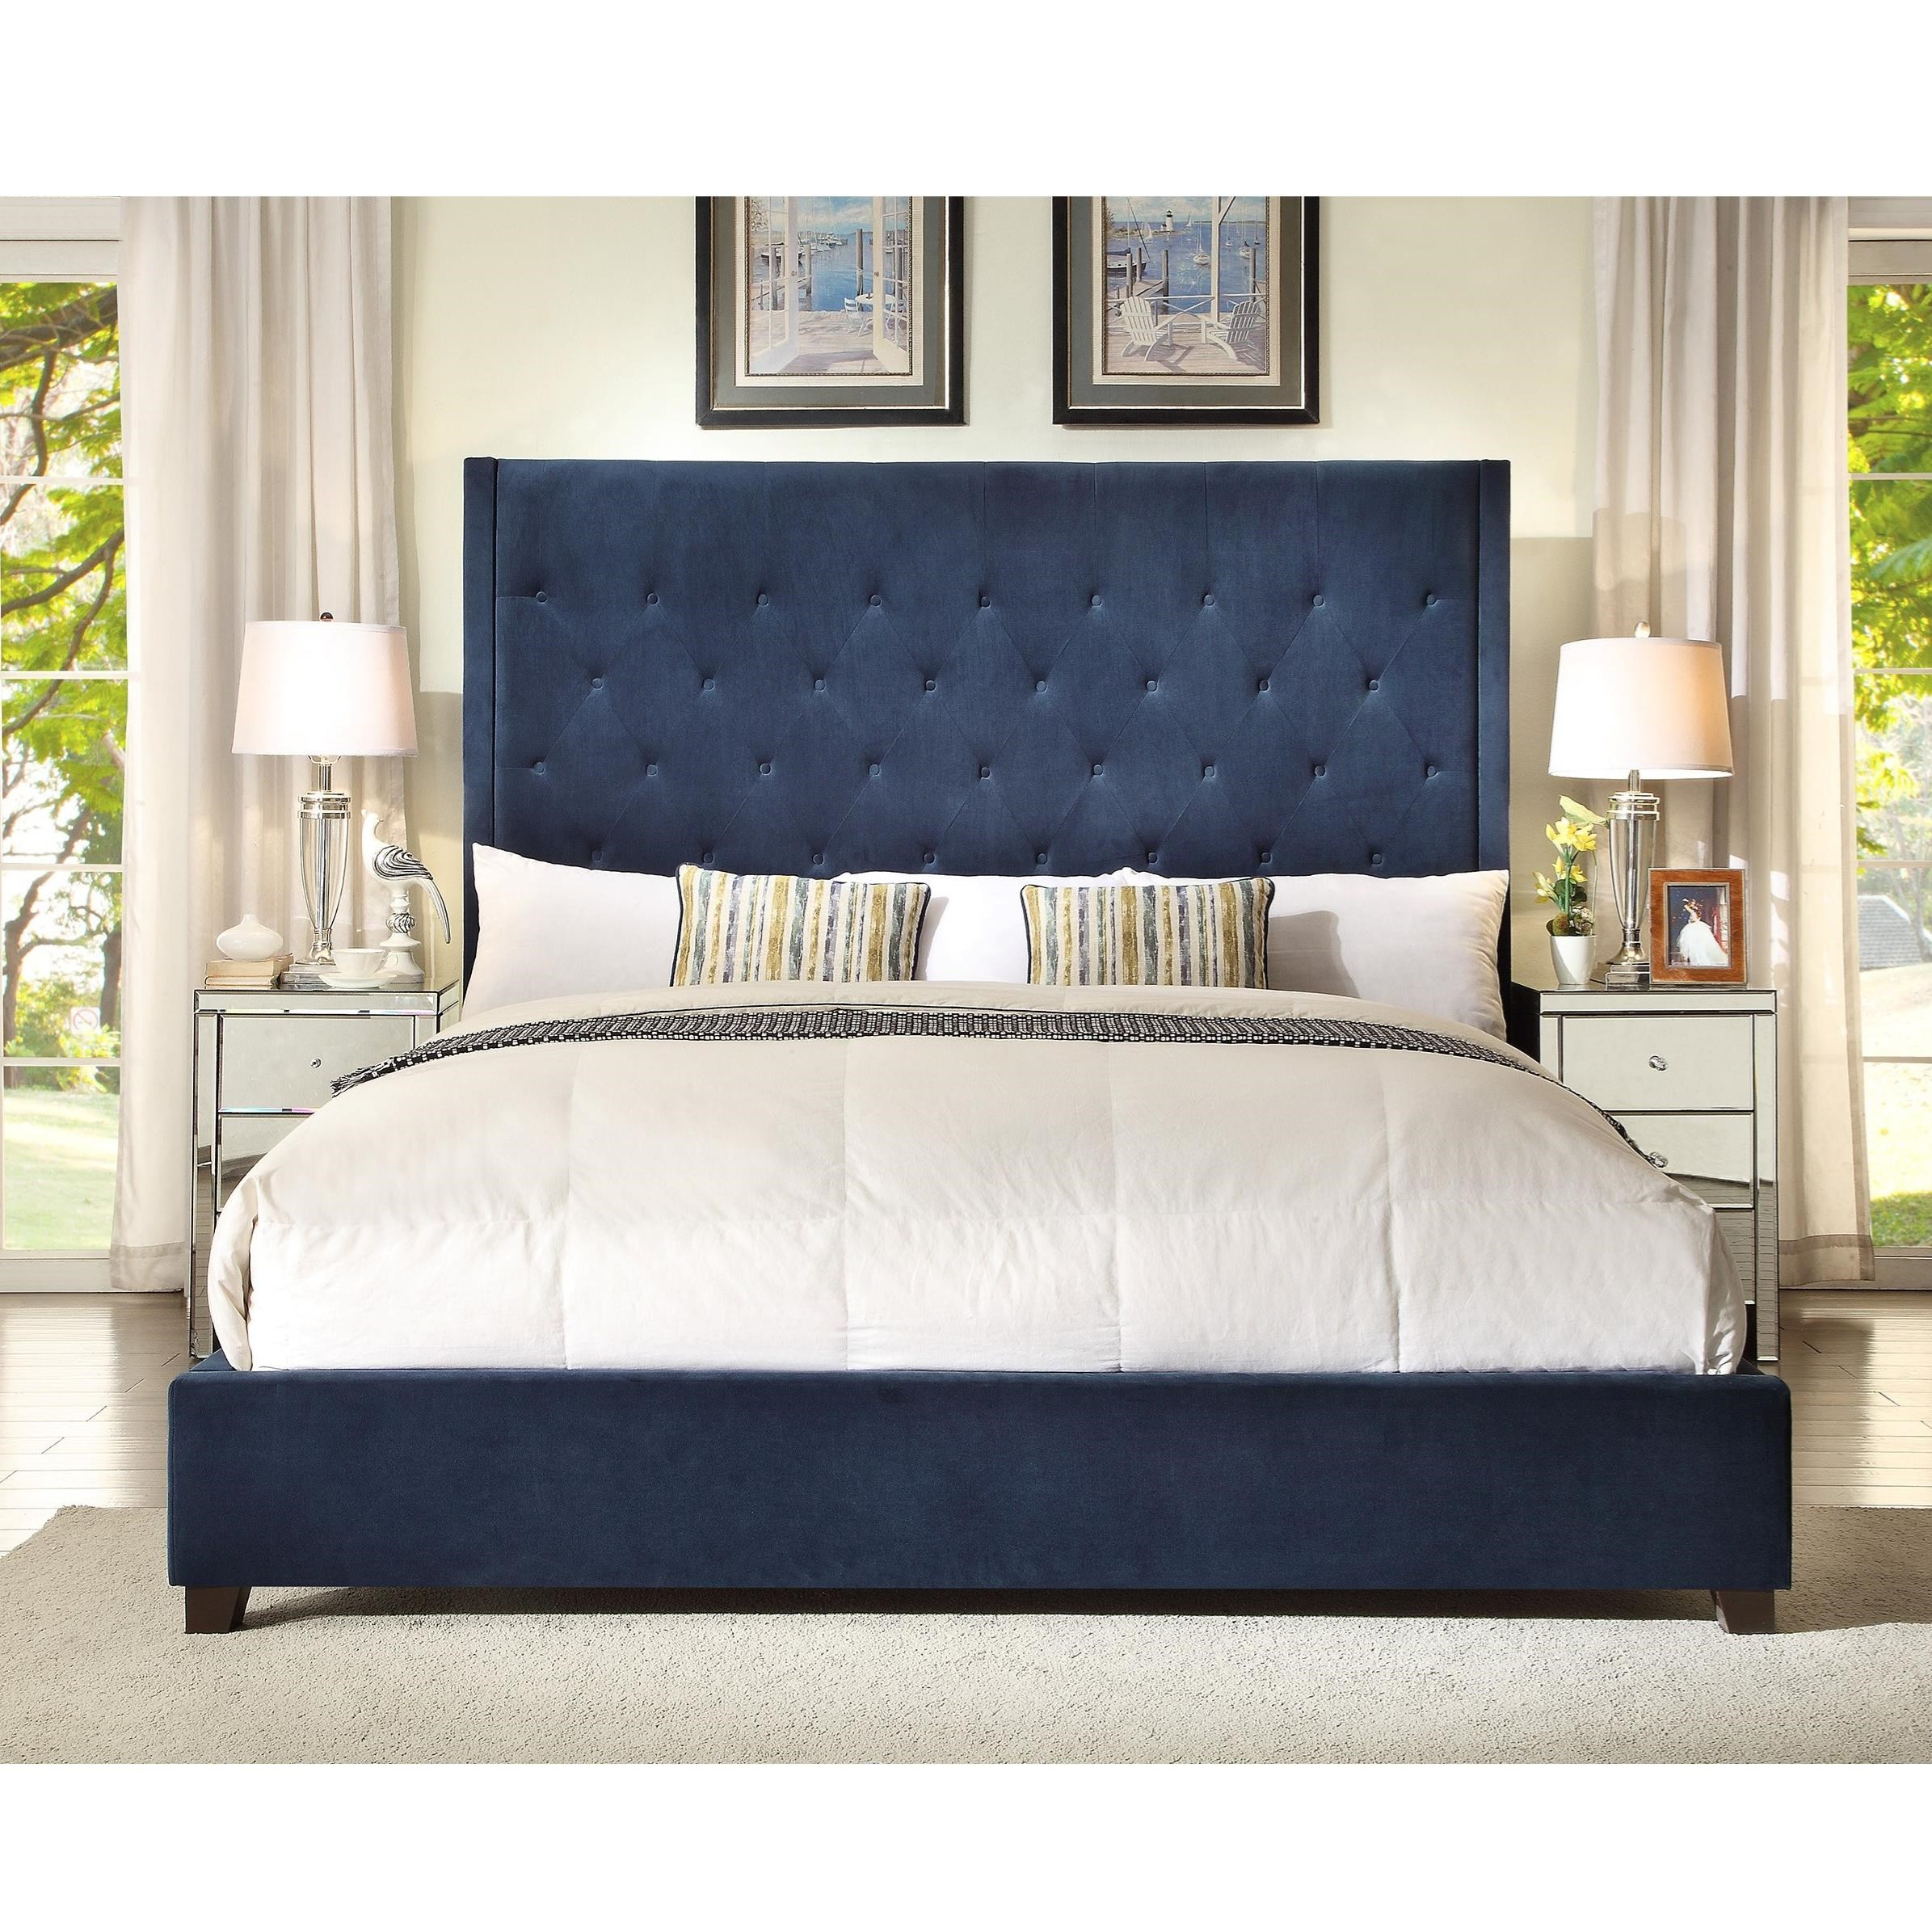 Crown Mark Reese Upholstered Bed - Item Number: 5286-Q-FB+HB+KQ-RAIL-NV